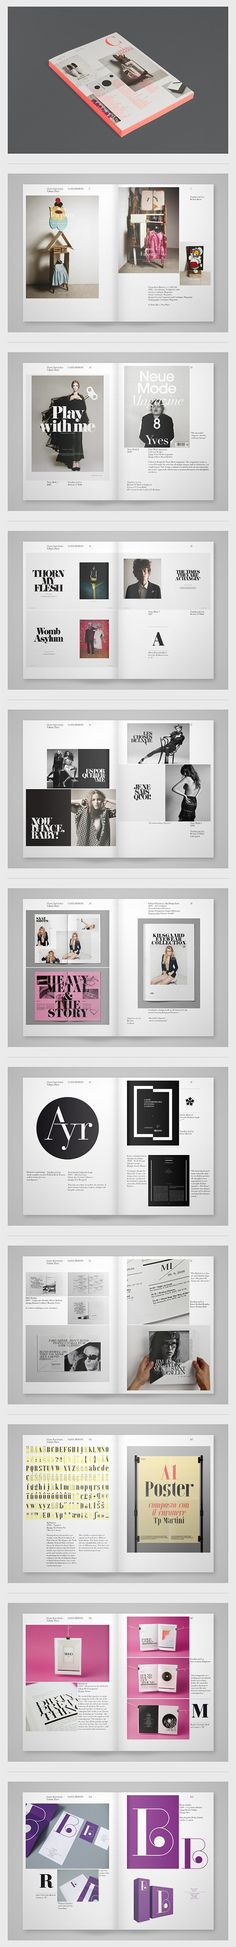 Fashion Magazine Layout Editorial Graphics 66 Ideas For 2019 Editorial Design Layouts, Magazine Layout Design, Graphic Design Layouts, Brochure Design, Book Layout, Page Layout, Layout Inspiration, Graphic Design Inspiration, Design Ideas